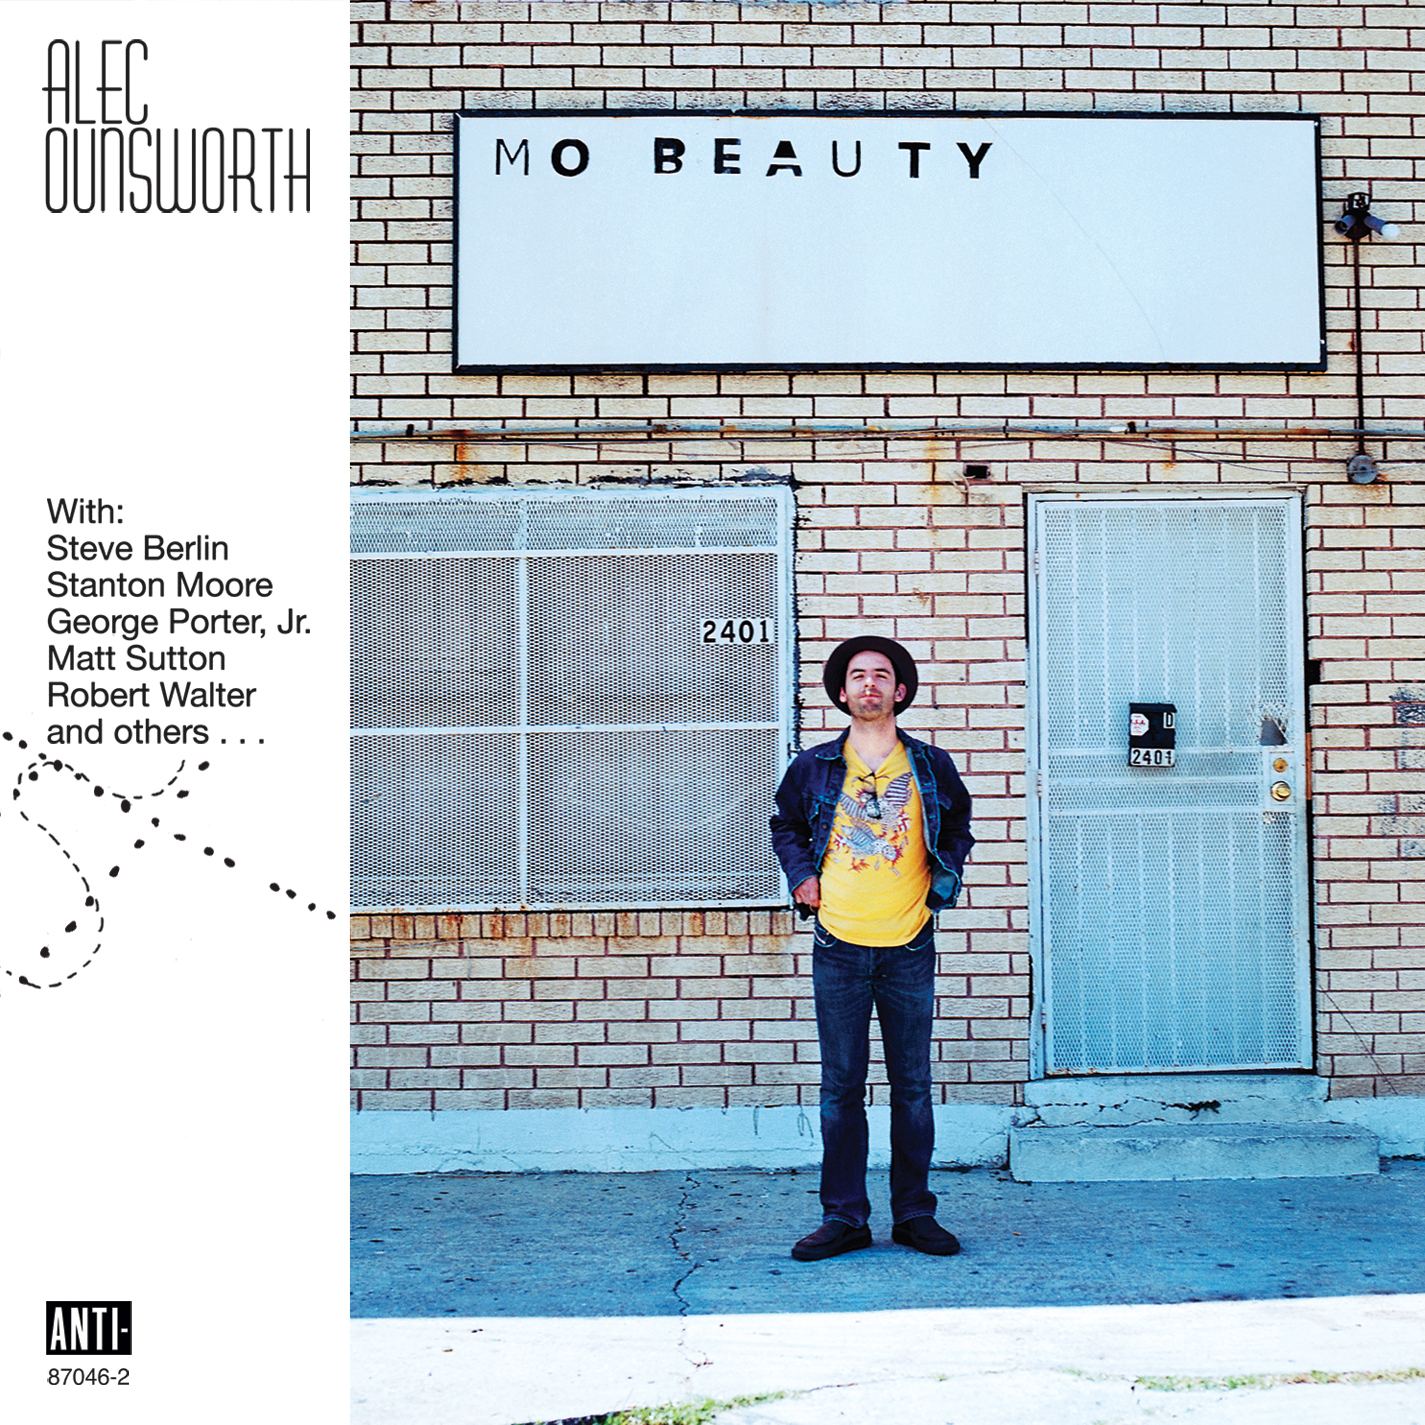 Alec Ounsworth, Mo Beauty